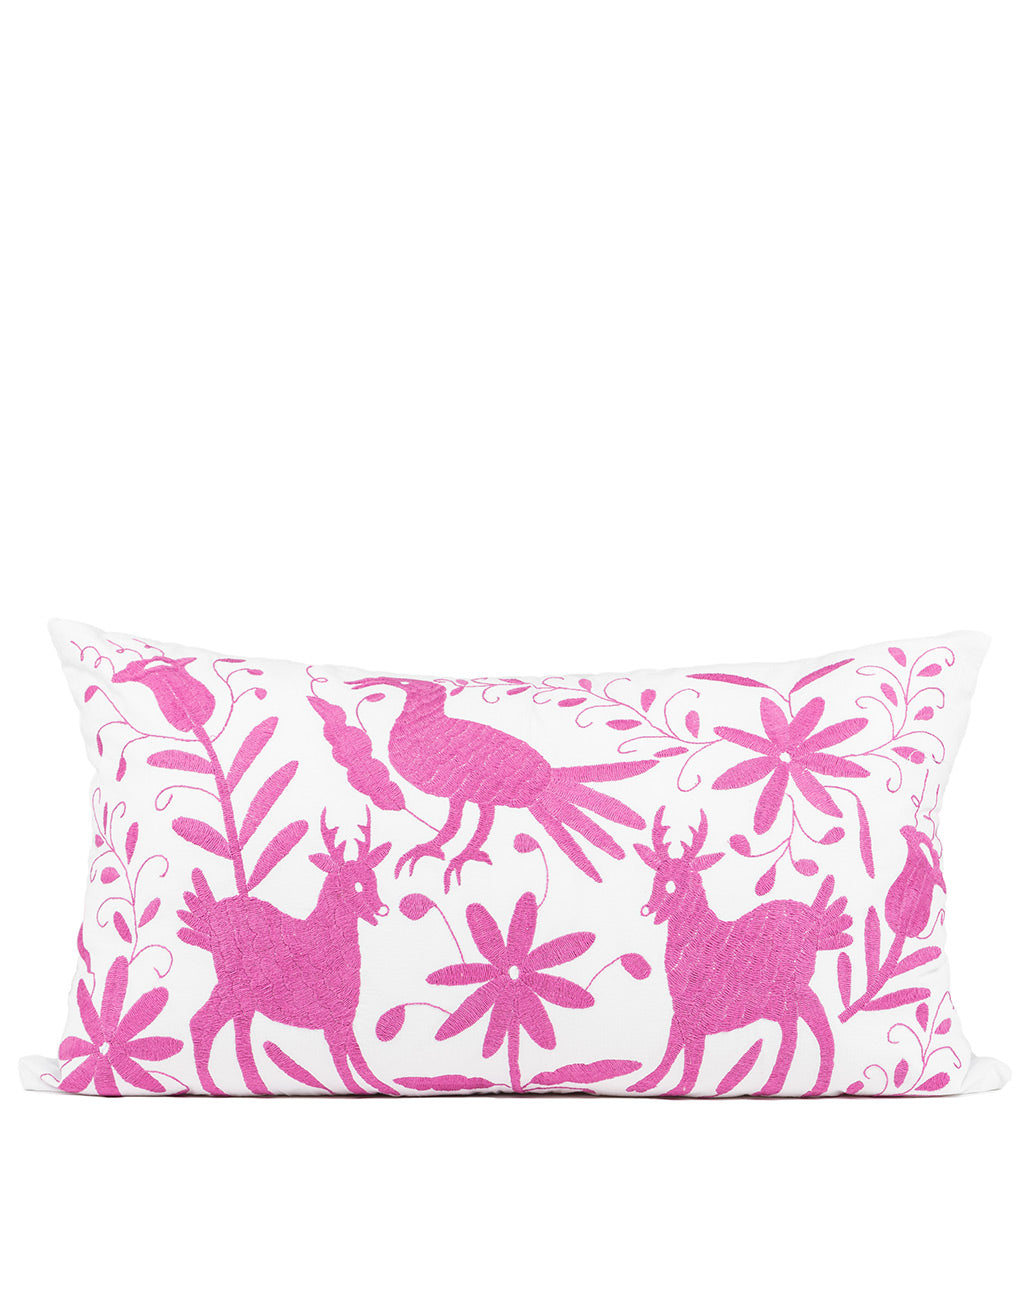 Tenango Embroidered Pillow Cover - Magenta